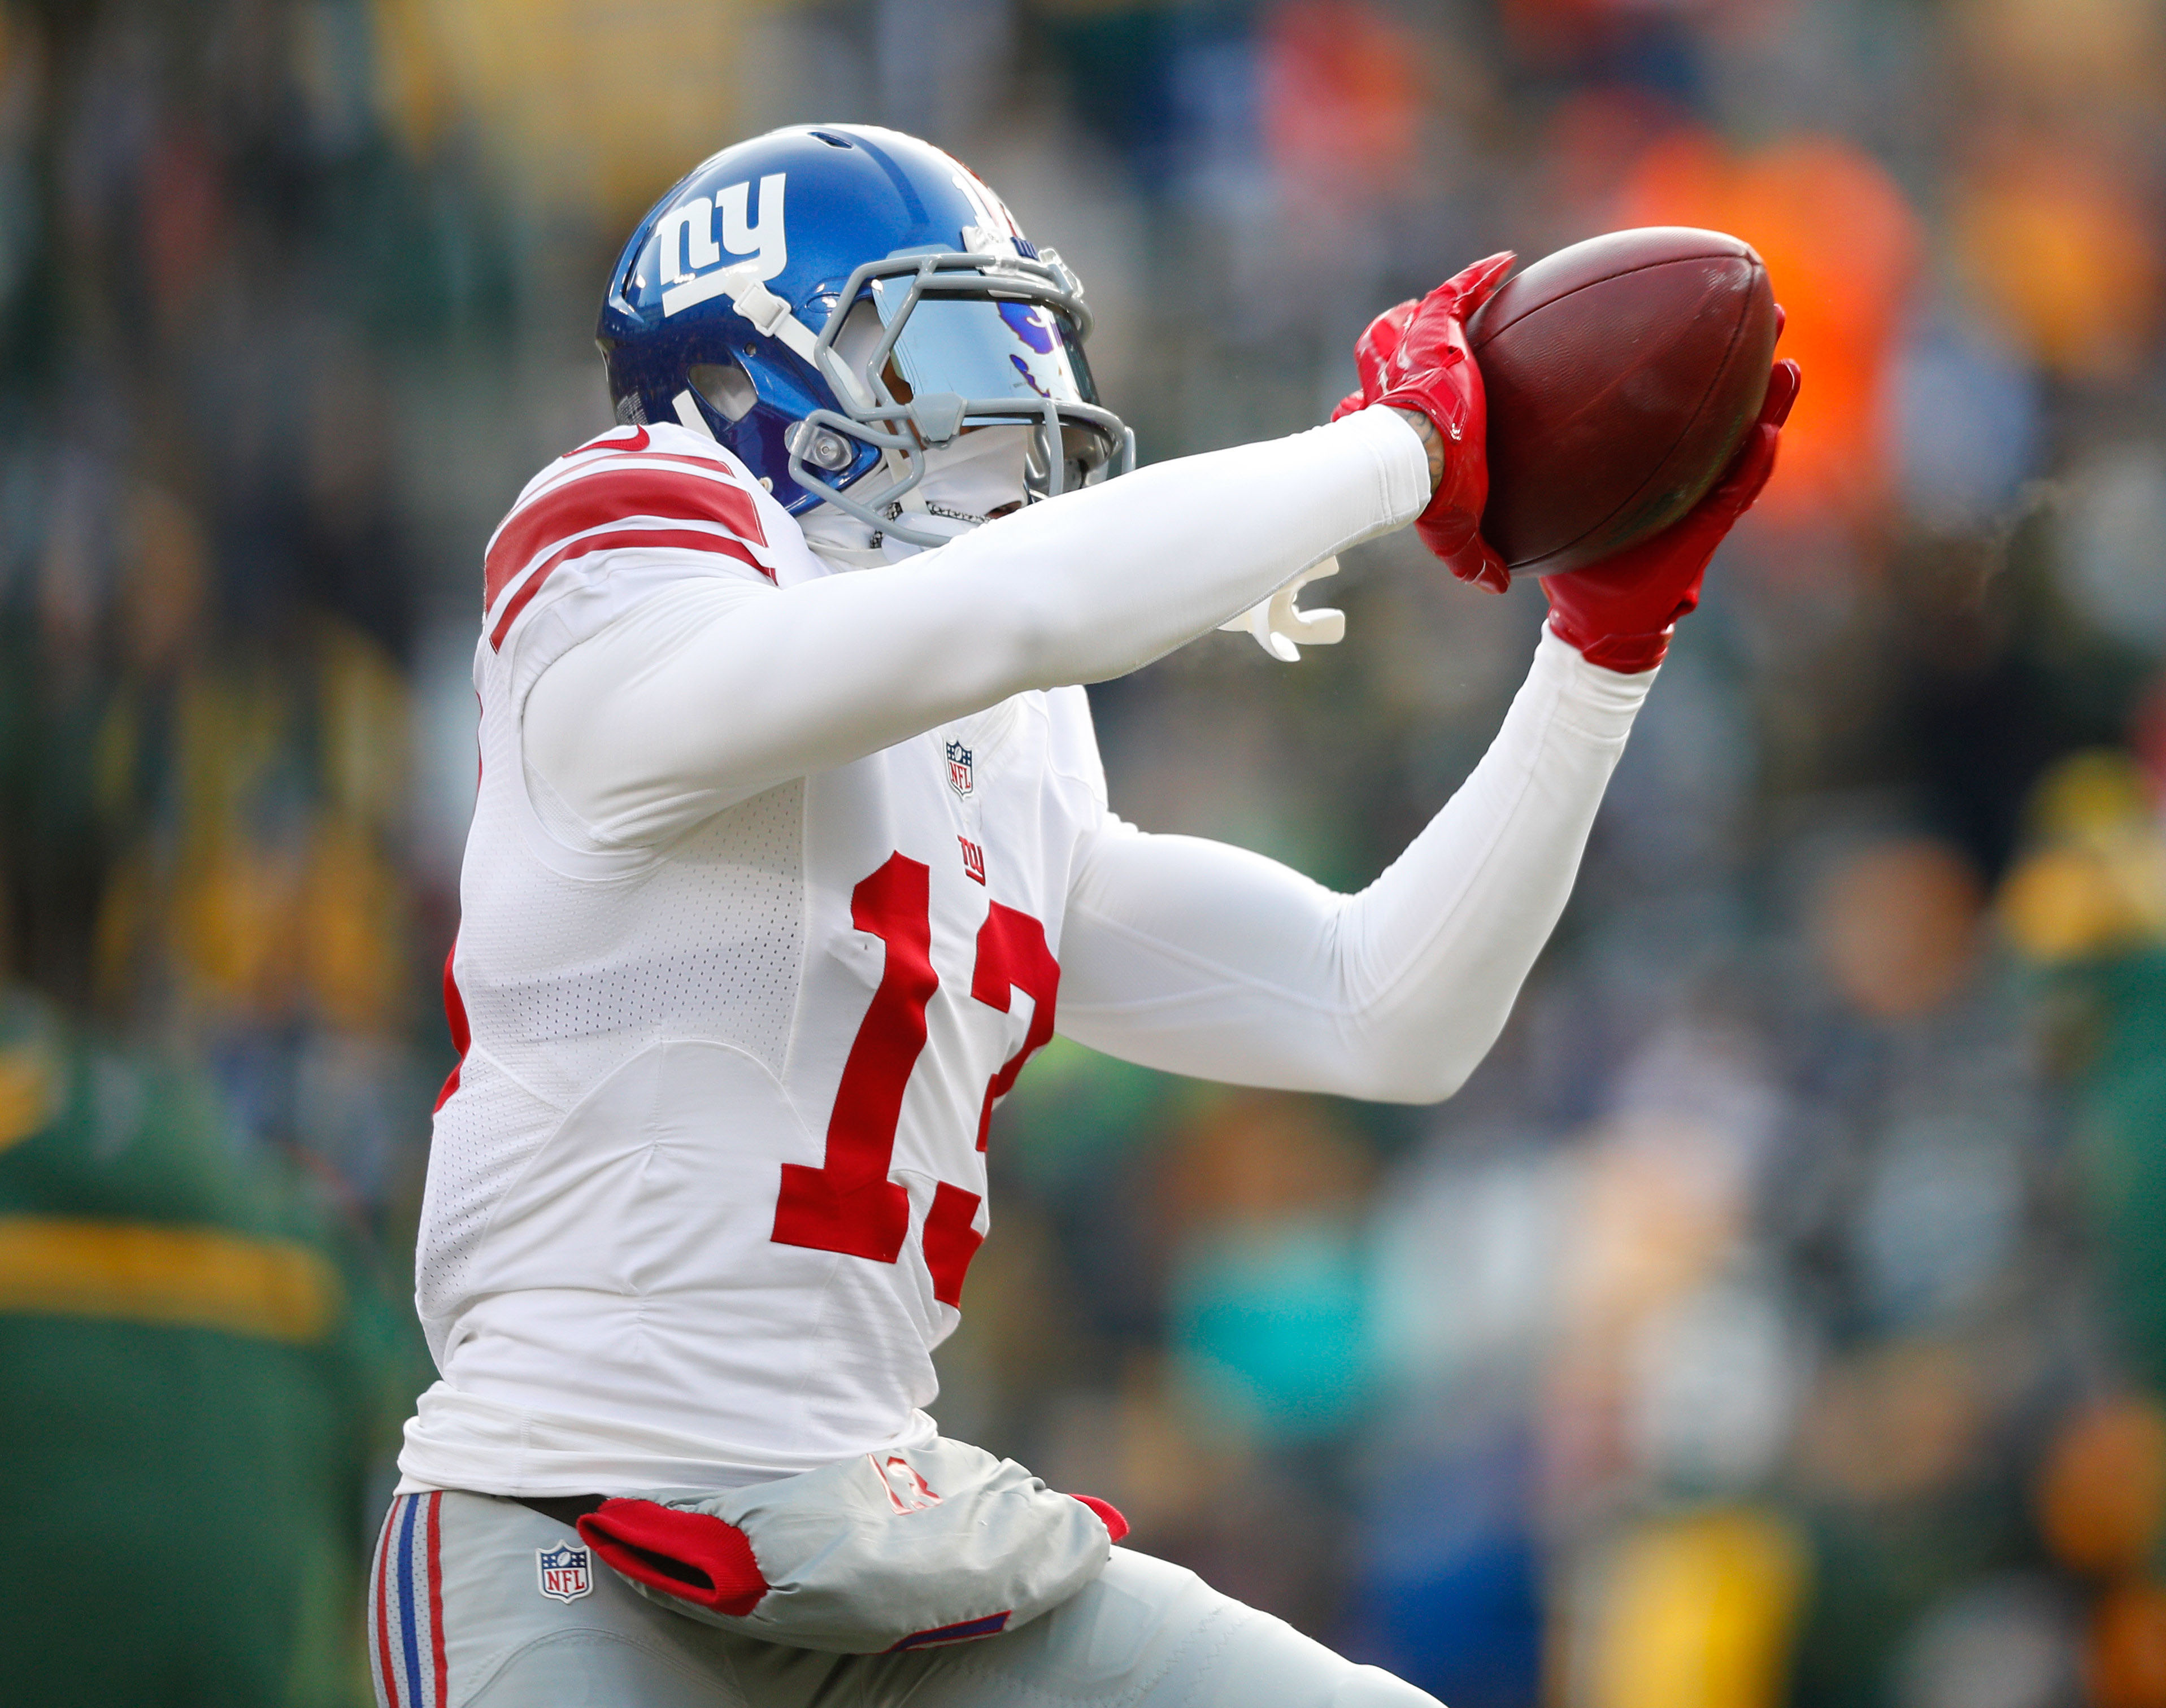 9823855-nfl-nfc-wild-card-new-york-giants-at-green-bay-packers